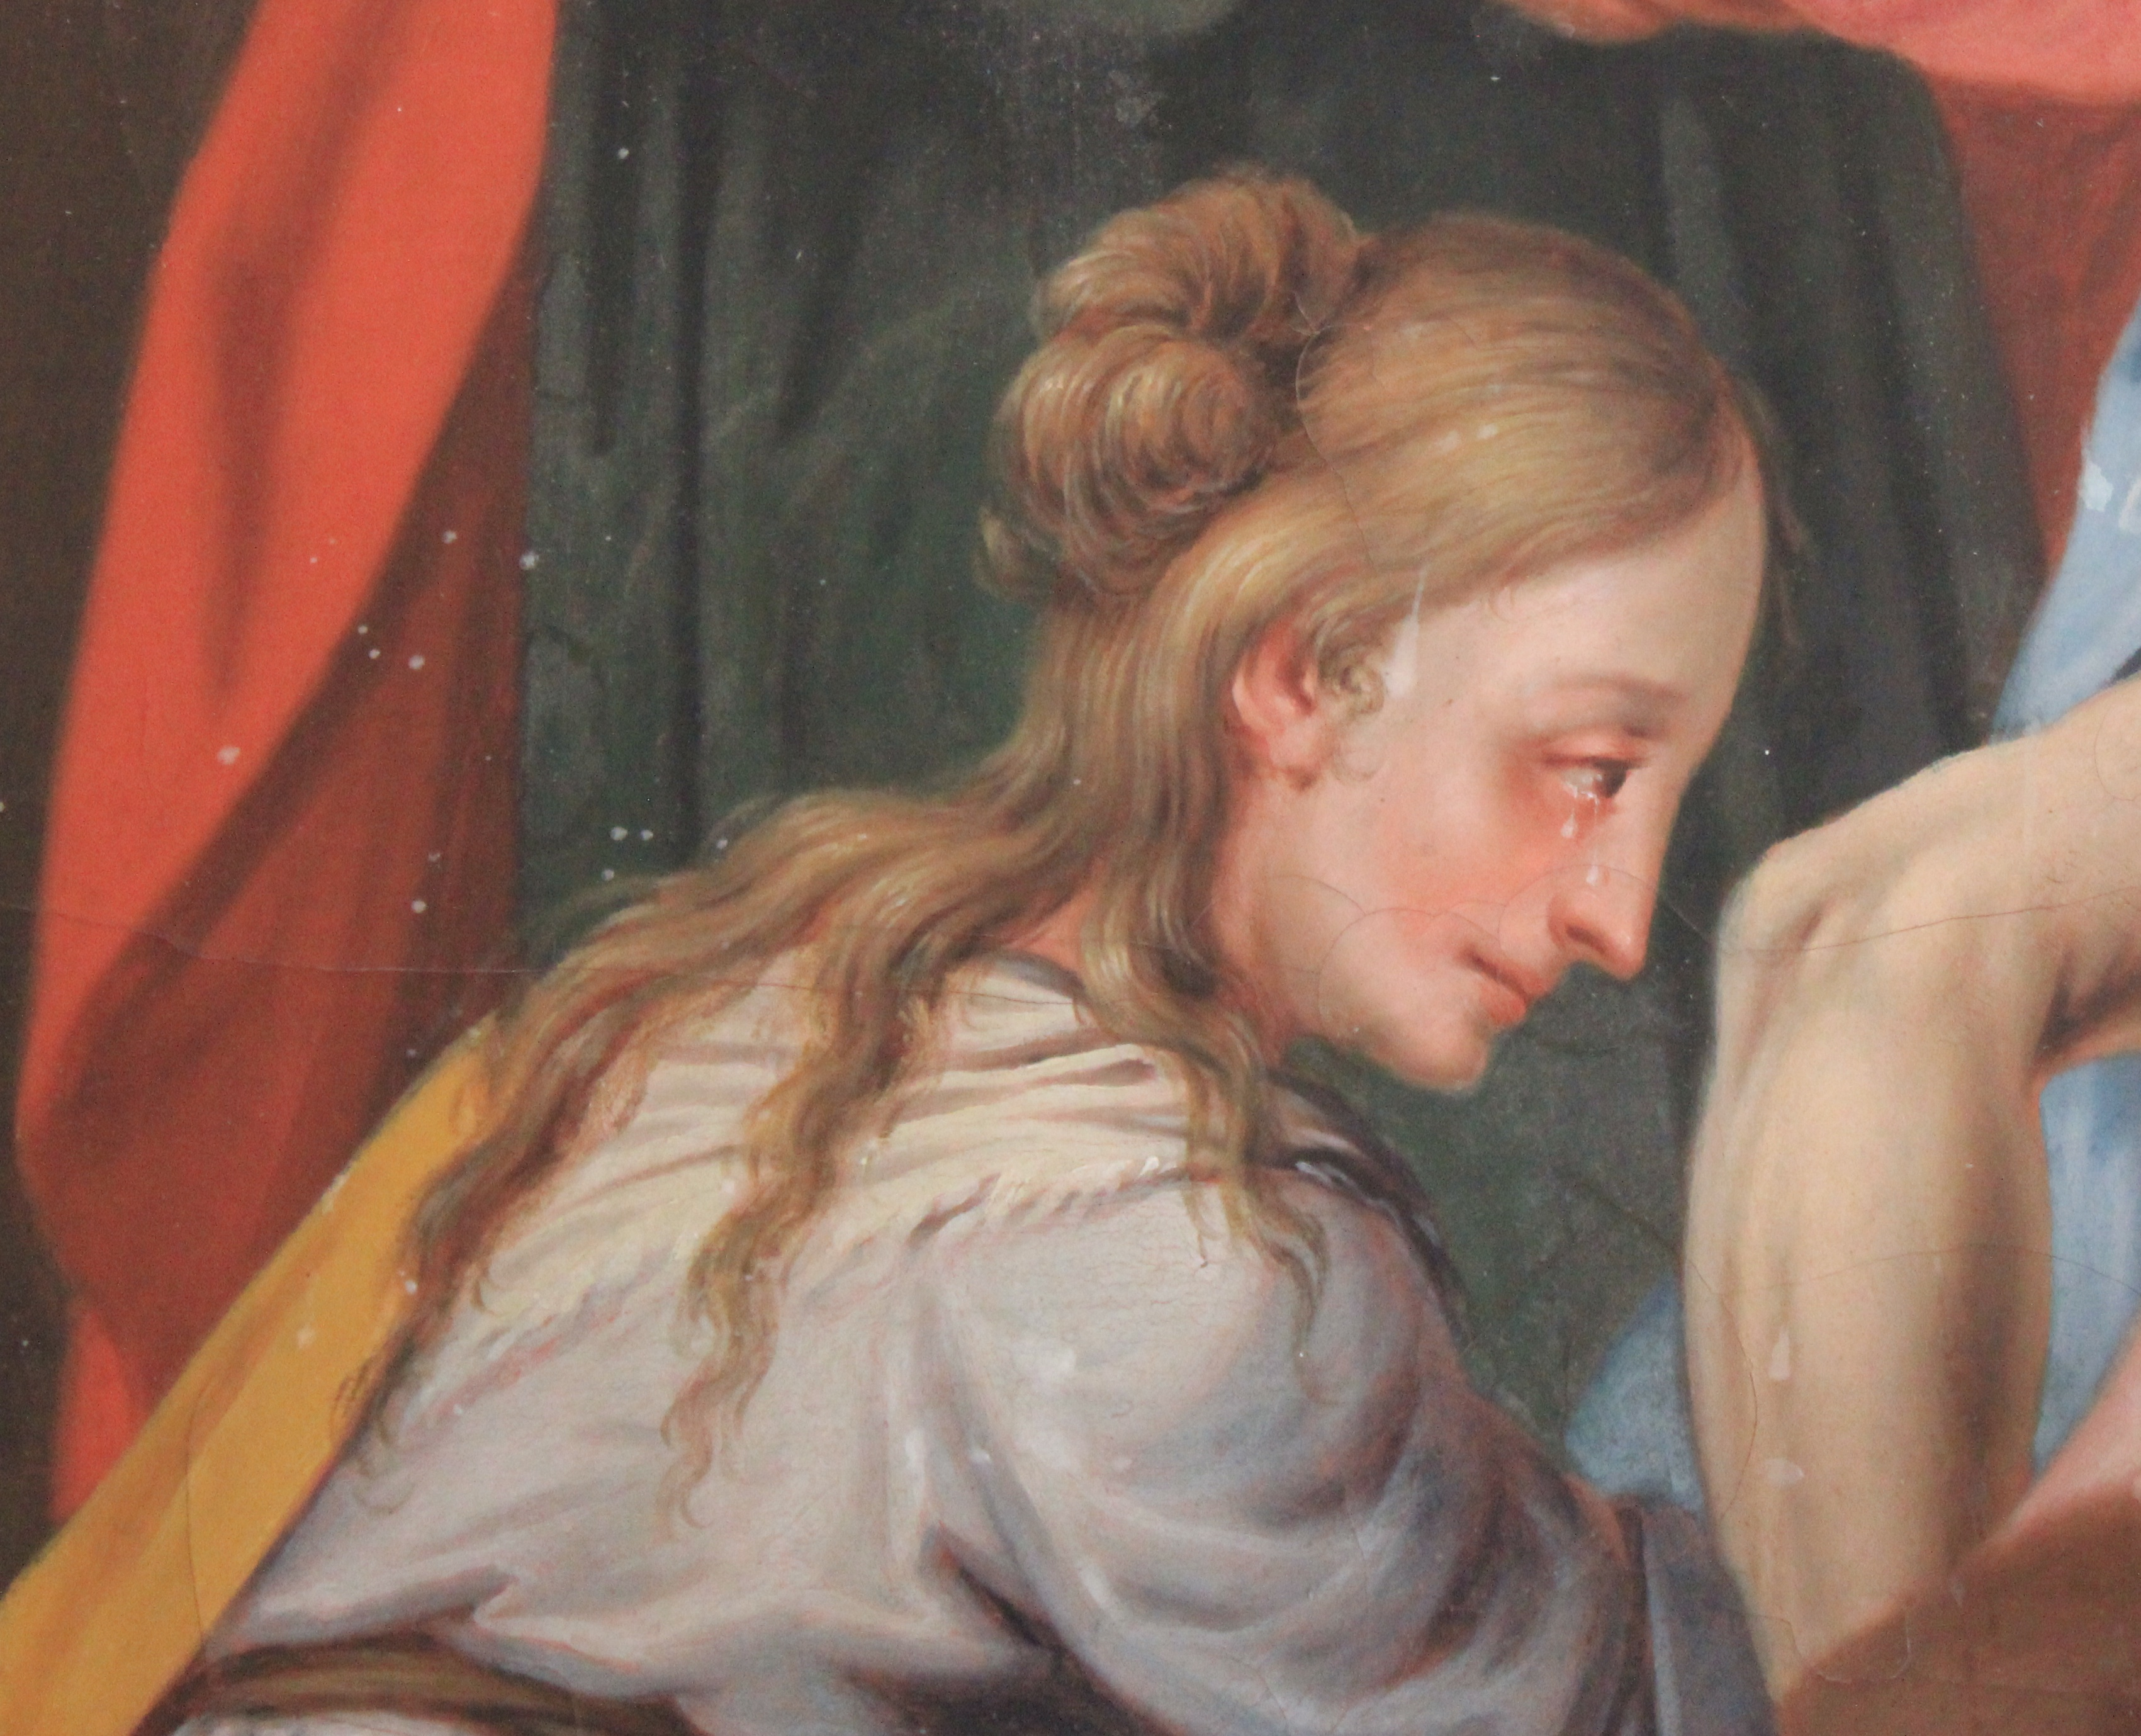 mary magdalene a character study a The life of mary magdalene contributed by tags: mary, character, life lessons, magdalene study tools.